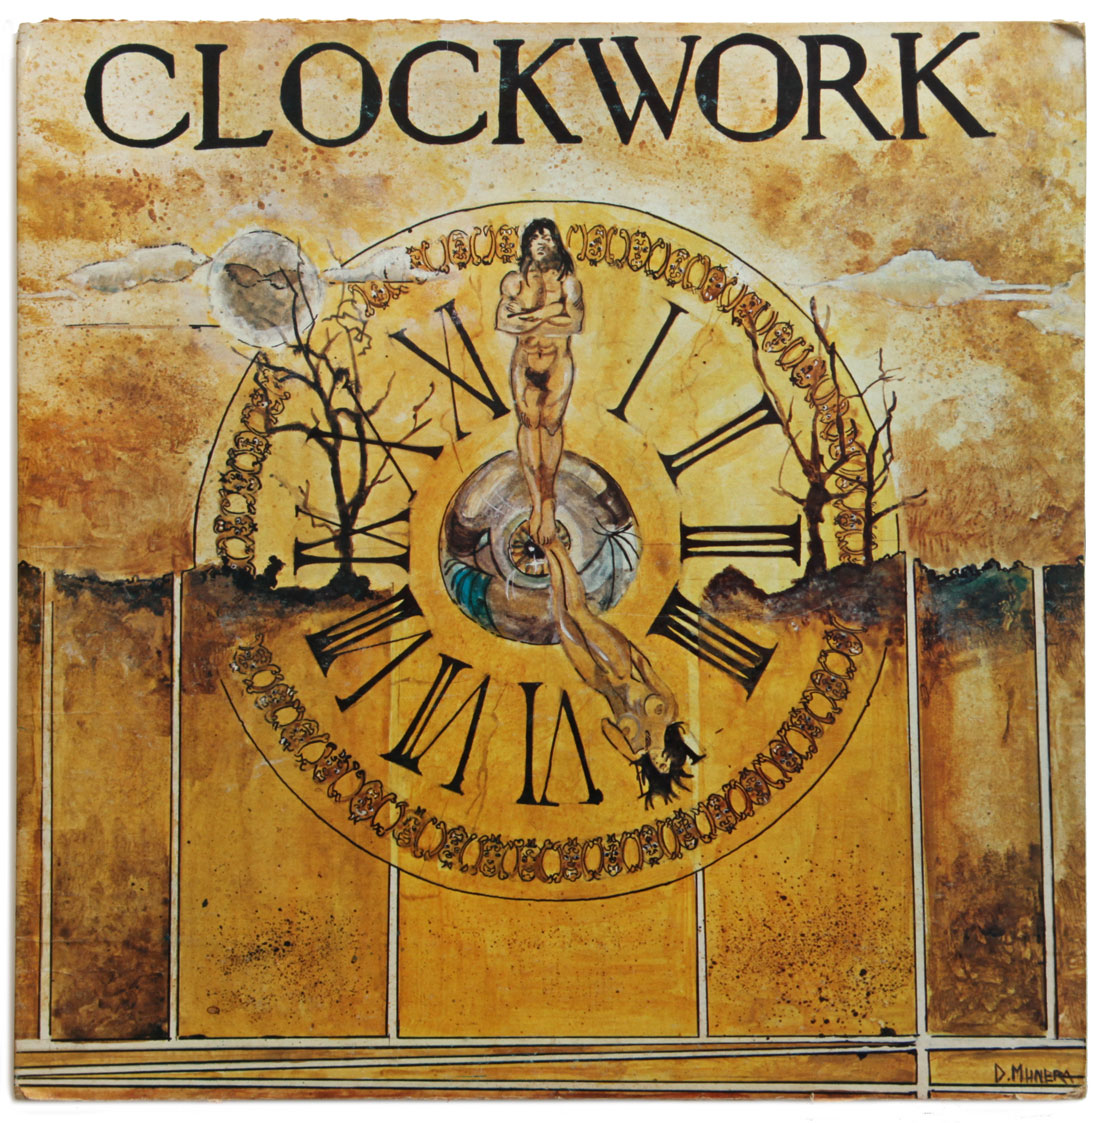 In 1975, Clockwork recorded its first album at M&M Studios in Hialeah, Florida.